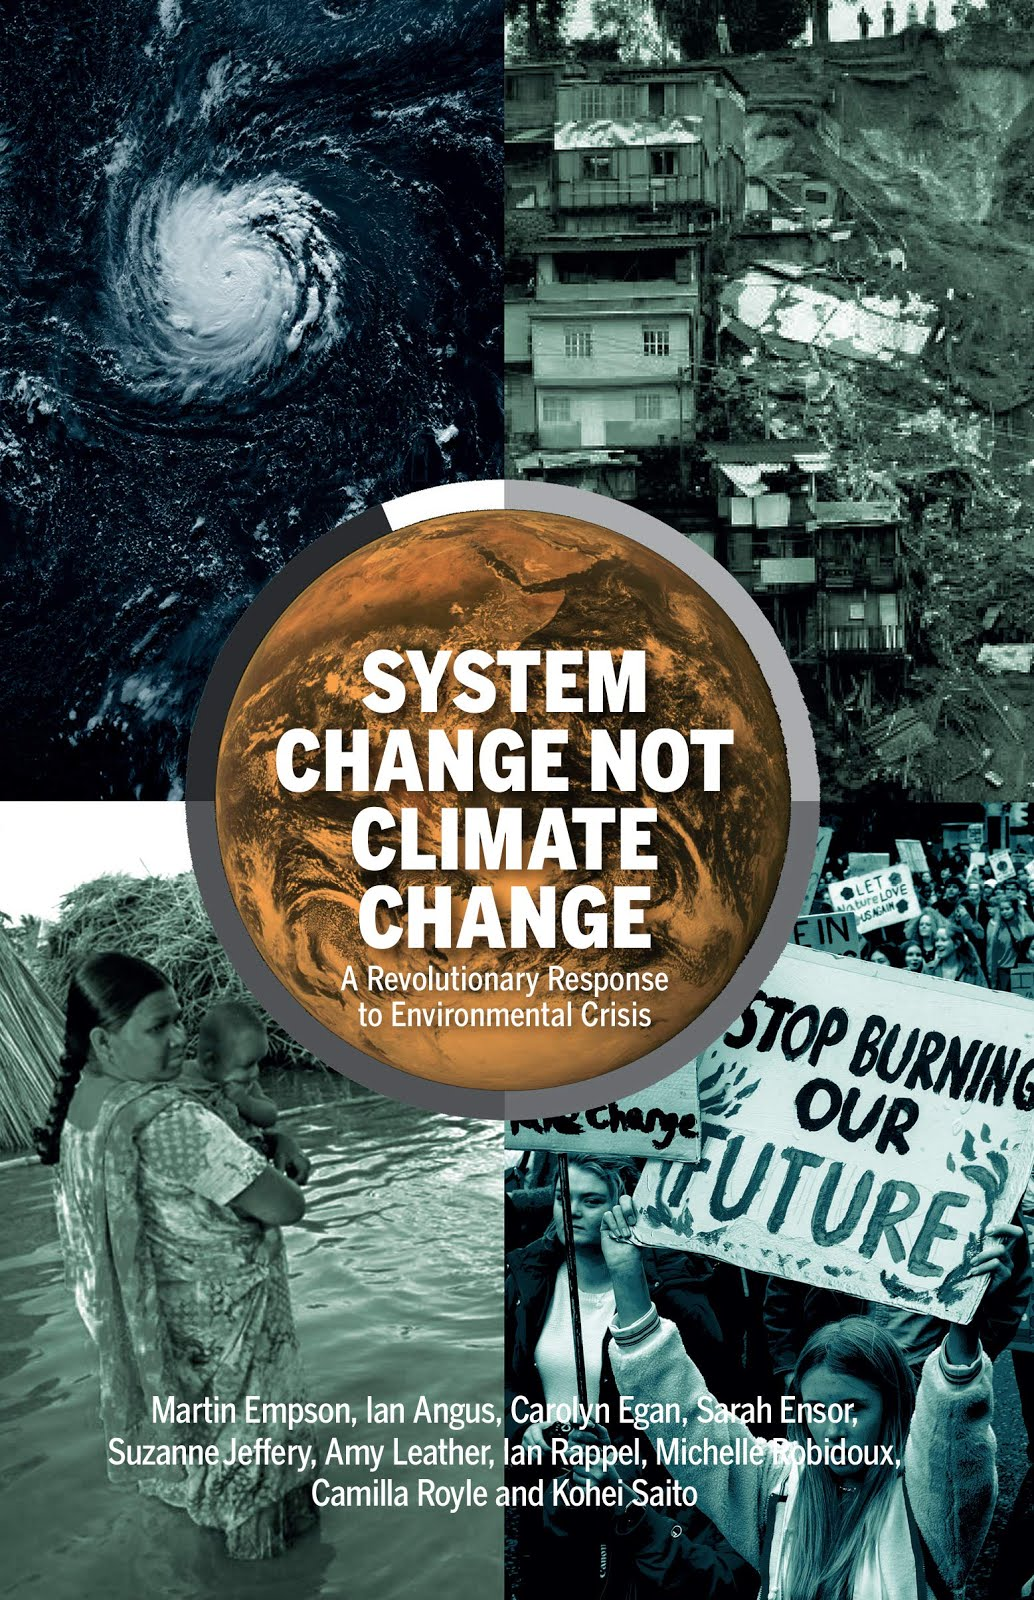 System Change not Climate Change: A Revolutionary Response to Environmental Crisis